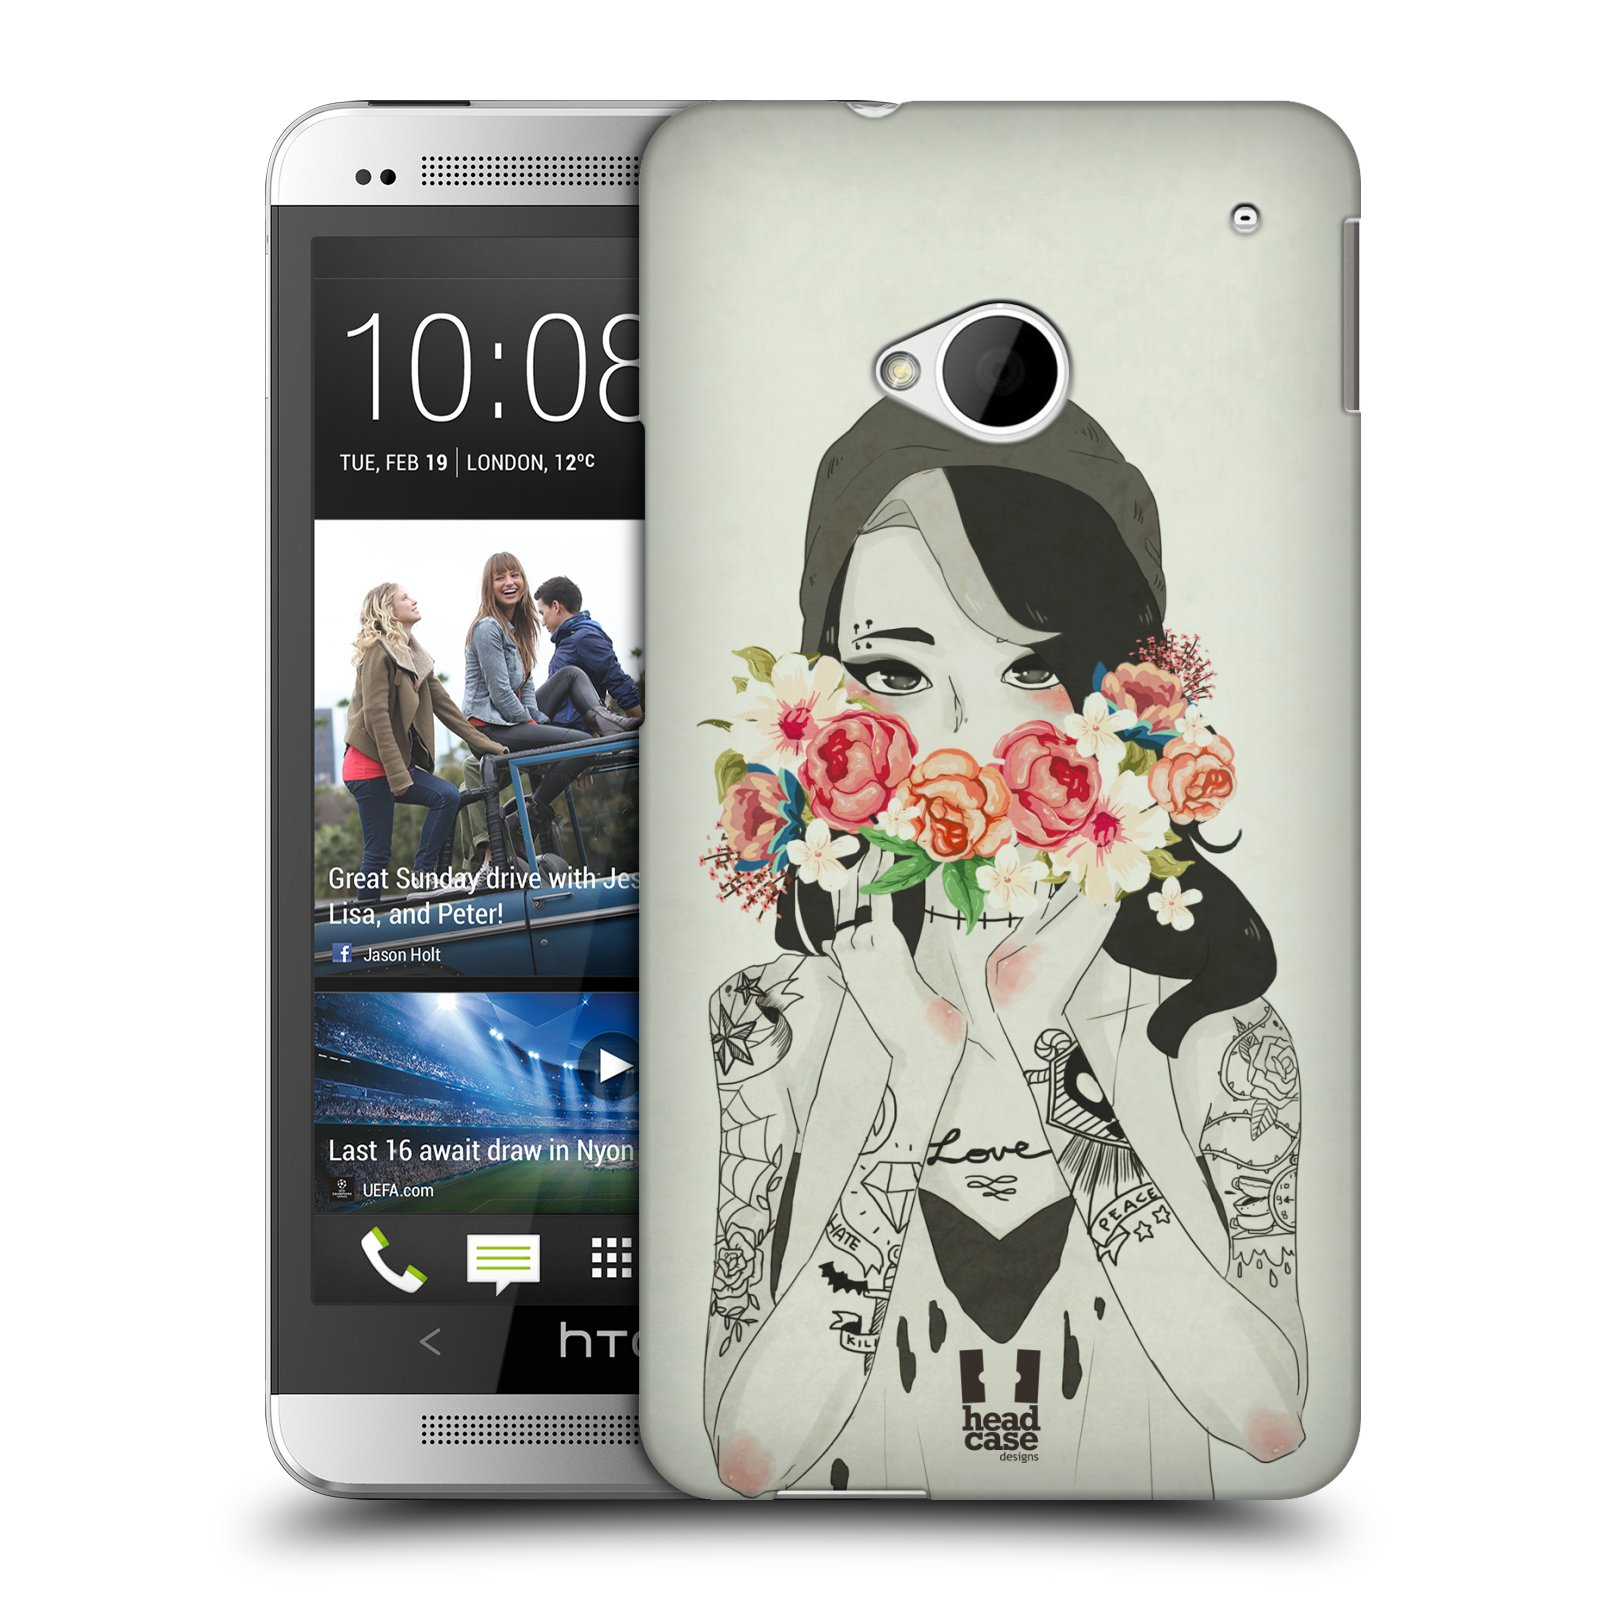 HEAD CASE DESIGNS FLORAL BEAUTIES HARD BACK CASE FOR HTC ONE